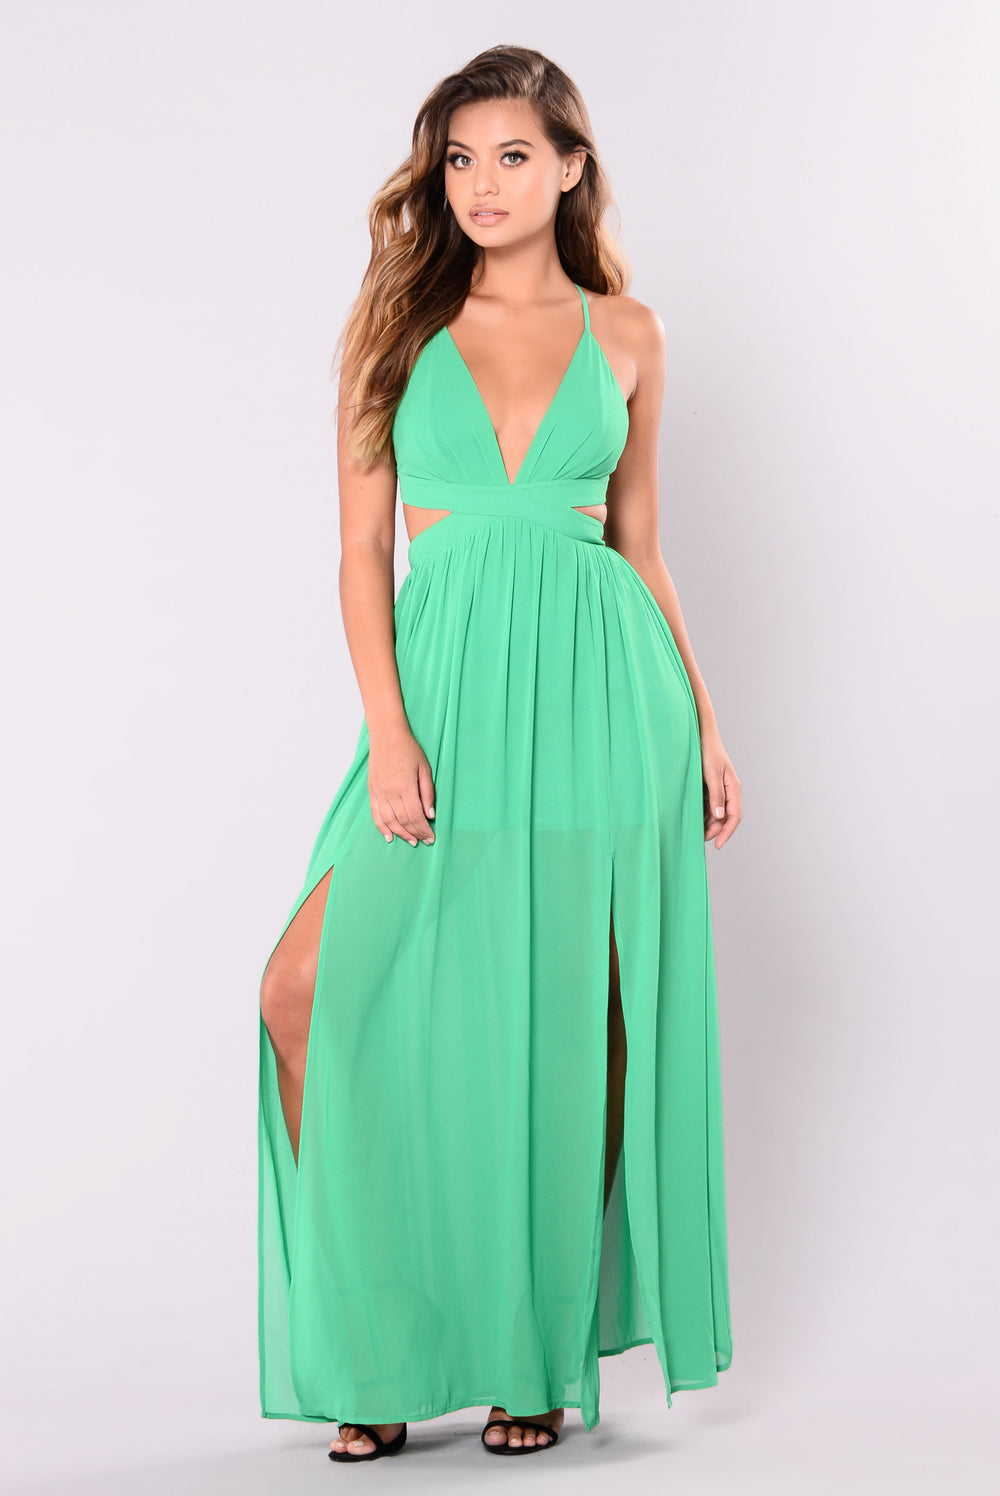 Shop trendy fashion style of maxi dresses online at JustFashionNow. Find the newest pink and black petite maxi dresses with affordable prices. S. M. H. D. Summer Dresses Fall Dresses Sale Flash Sale.